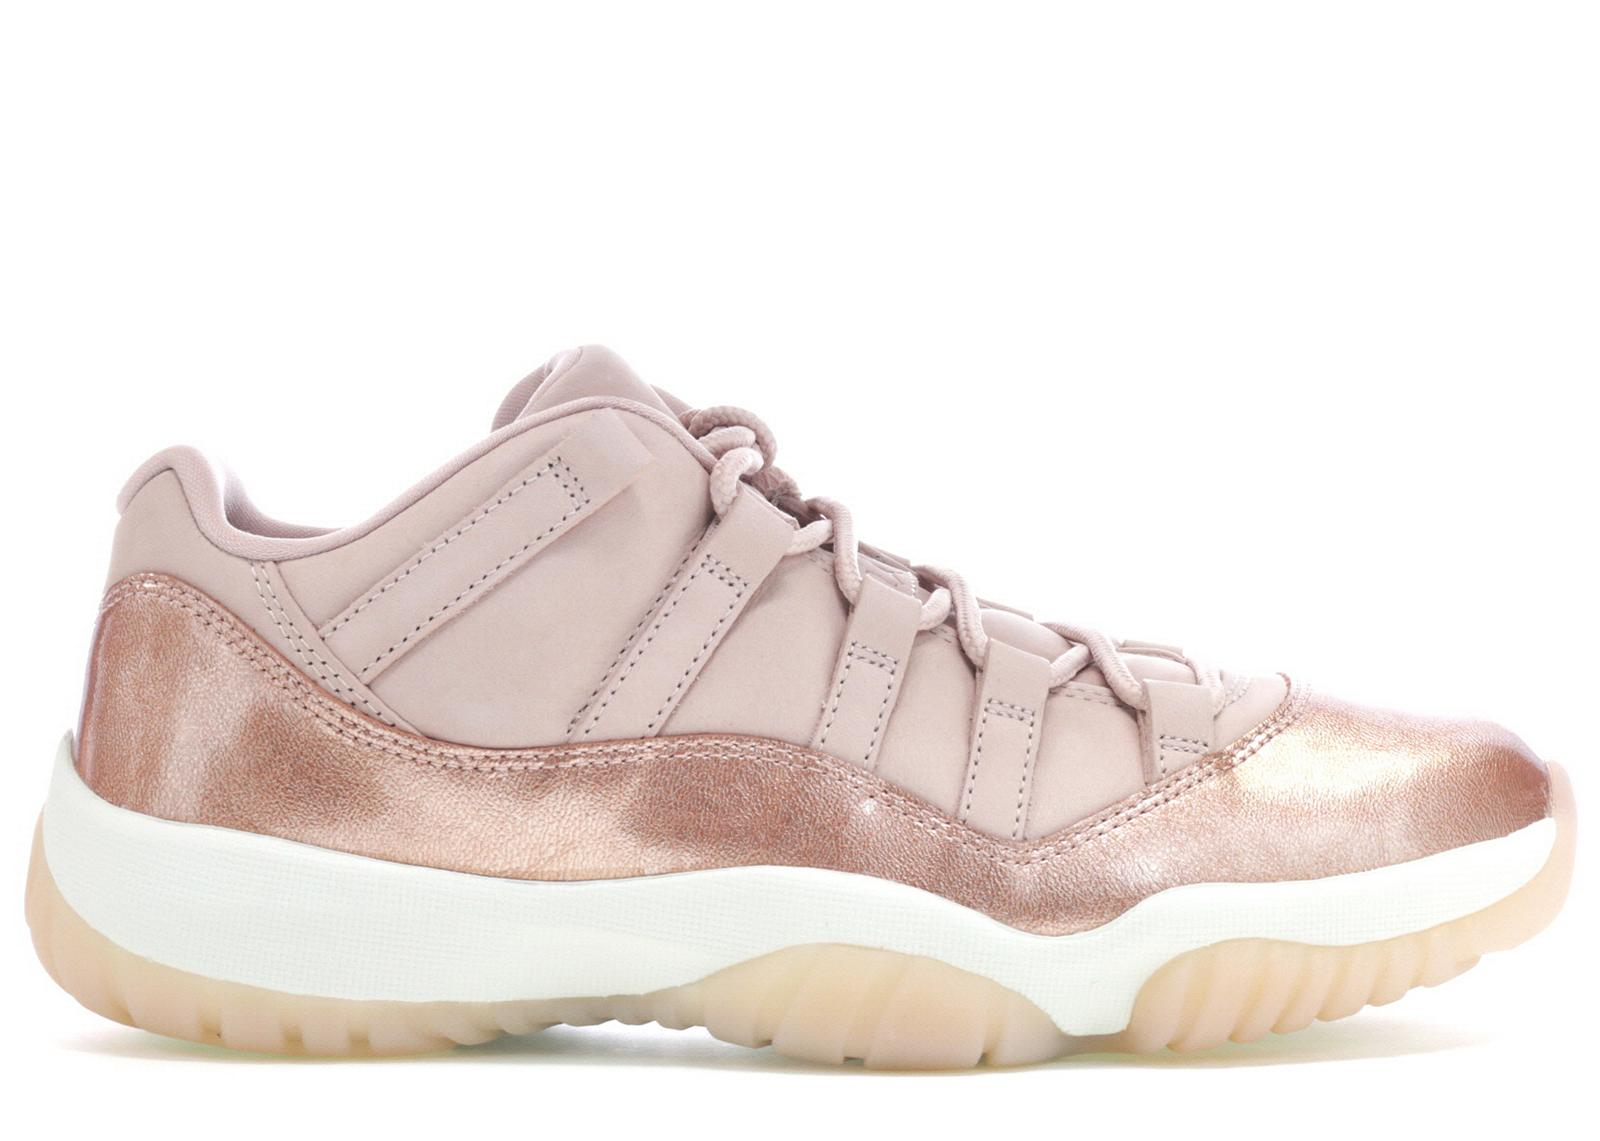 Lyst - Nike 11 Retro Low Rose Gold (w) in Pink b4bc9997c67c